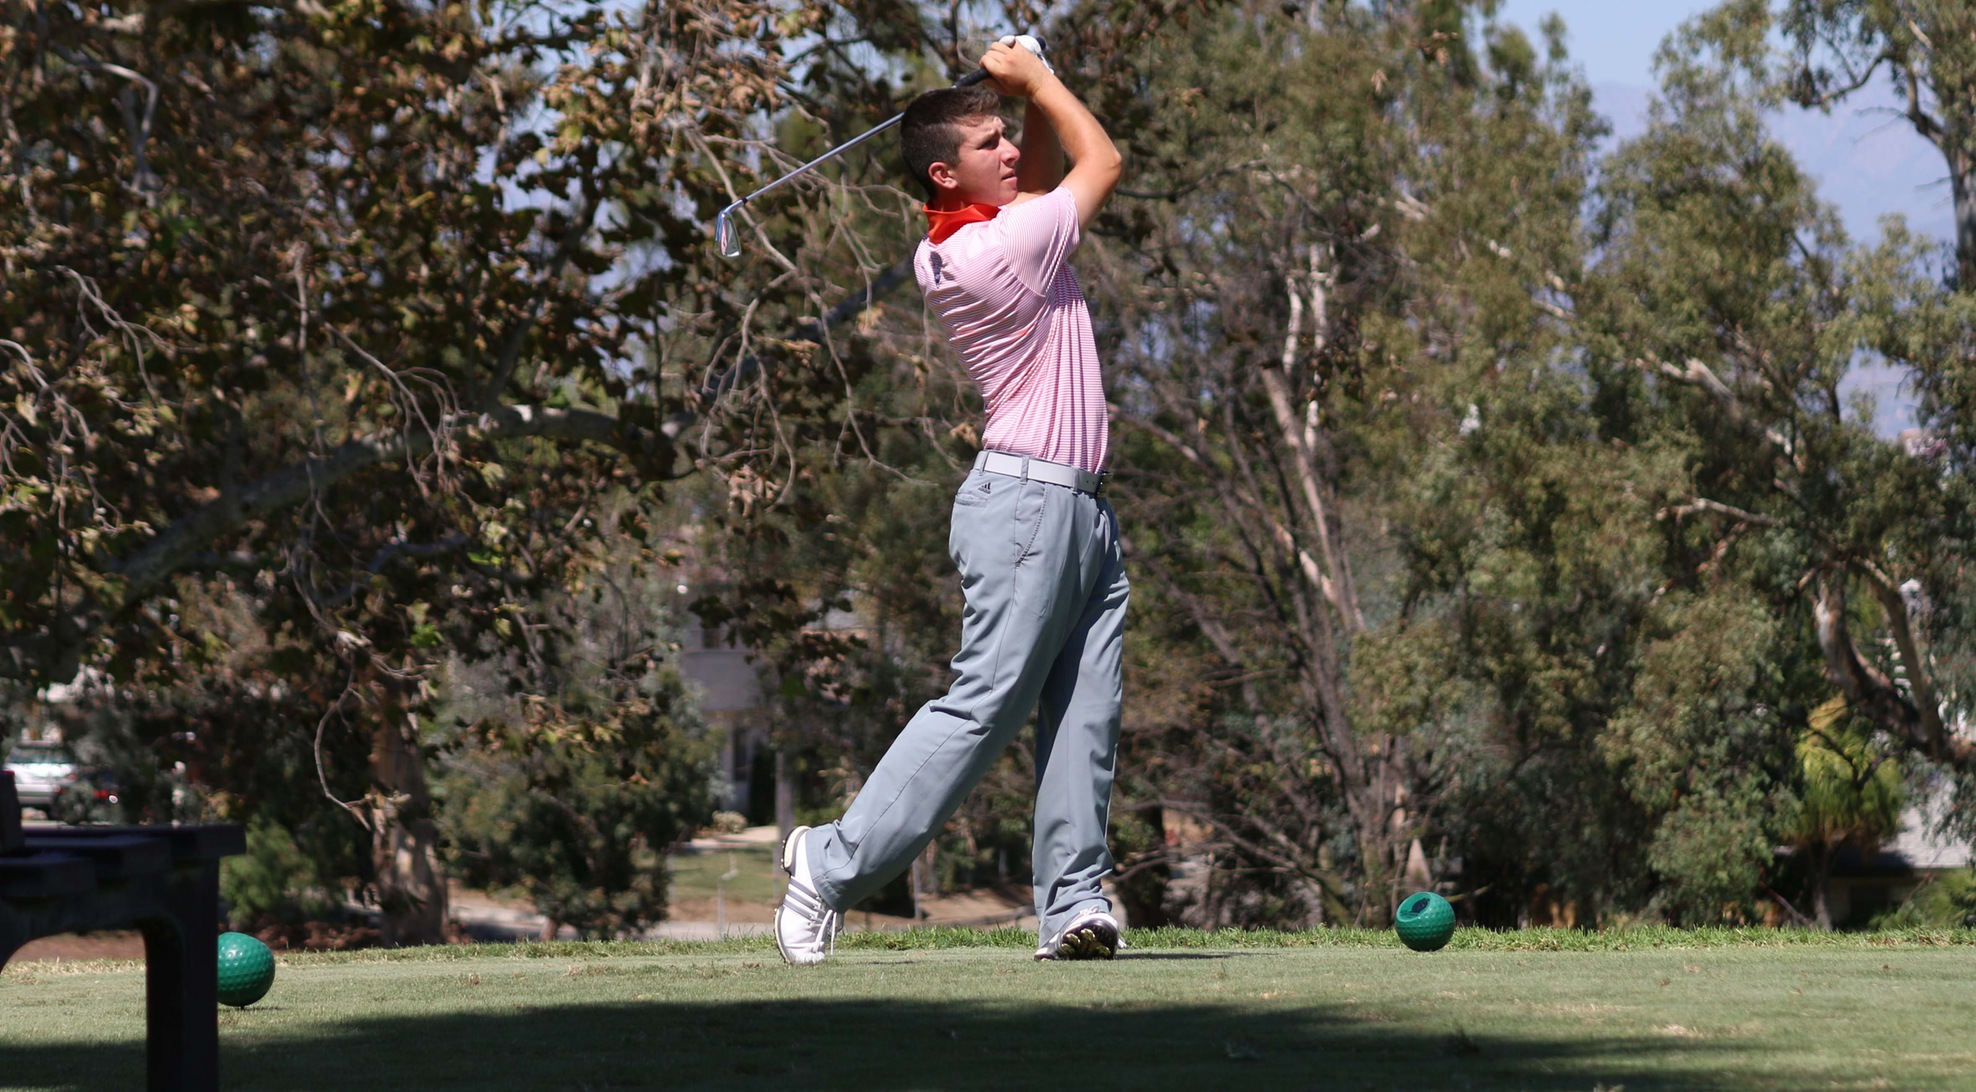 No. 6 Men's Golf wraps up fall season with 5th place finish